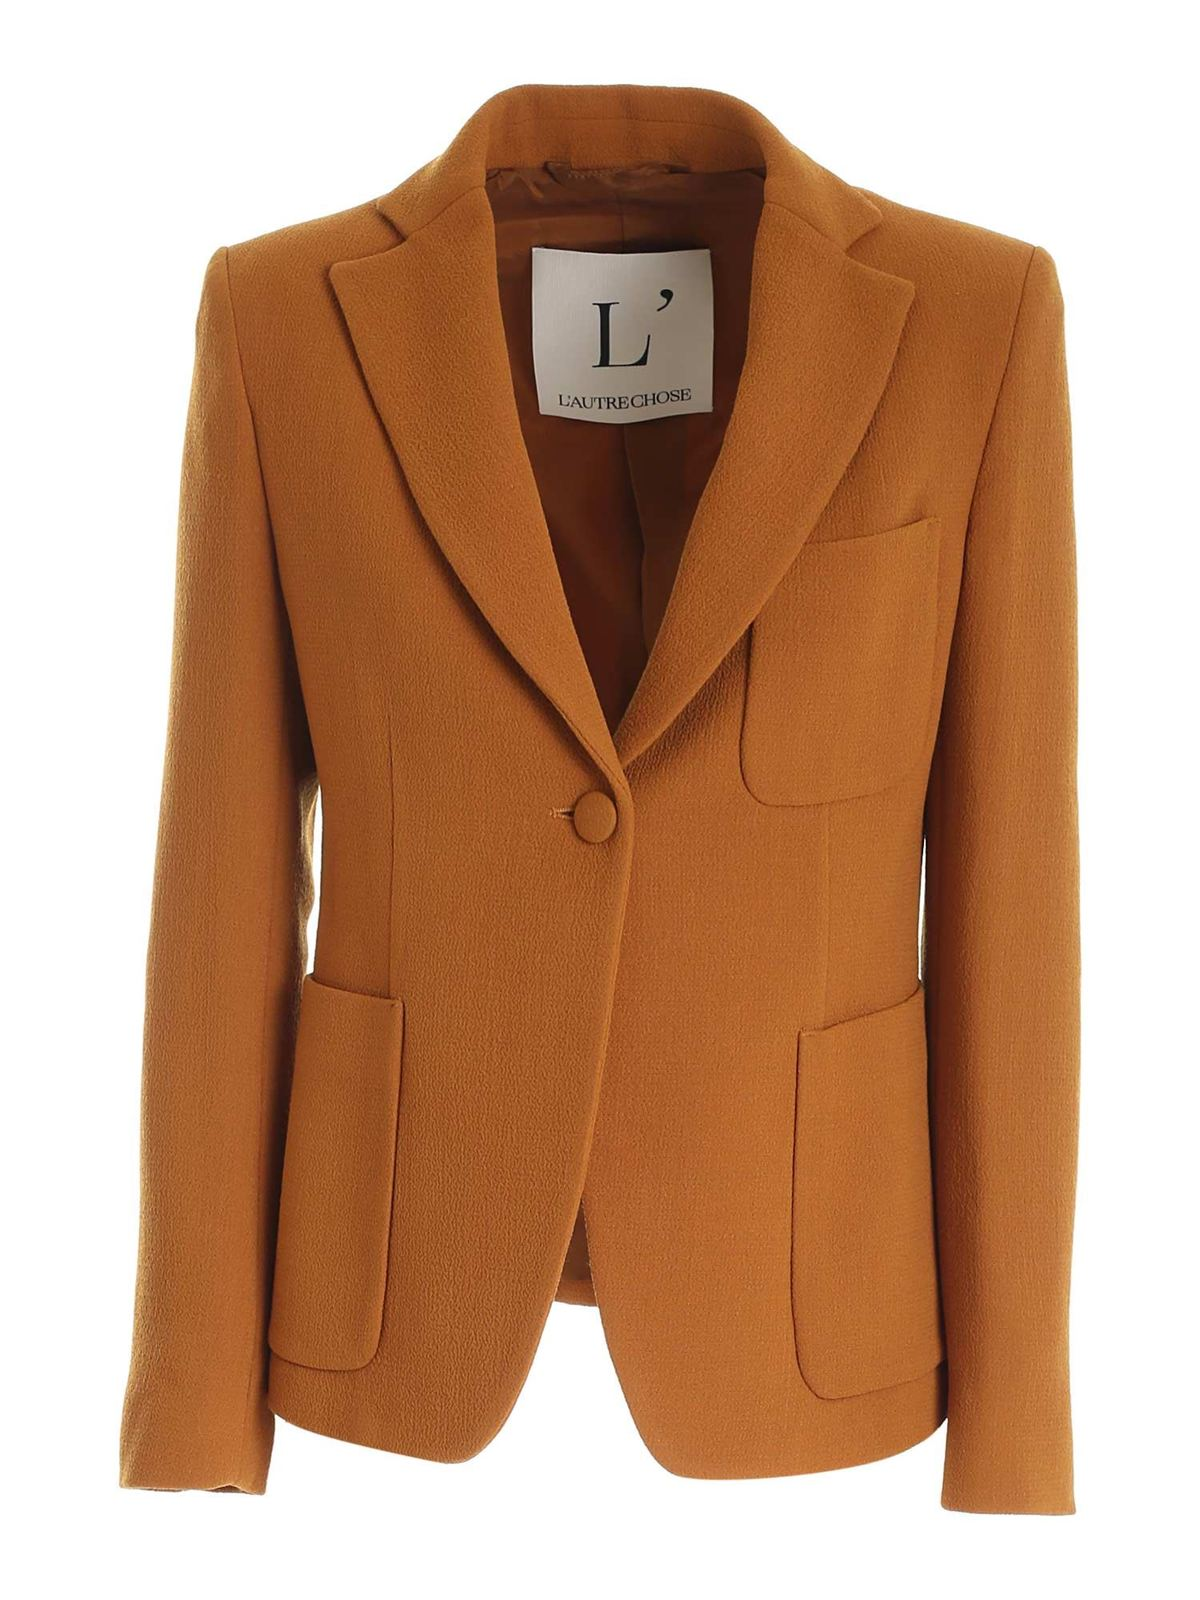 L'autre Chose WOOL SINGLE-BREASTED JACKET IN OCHER COLOR